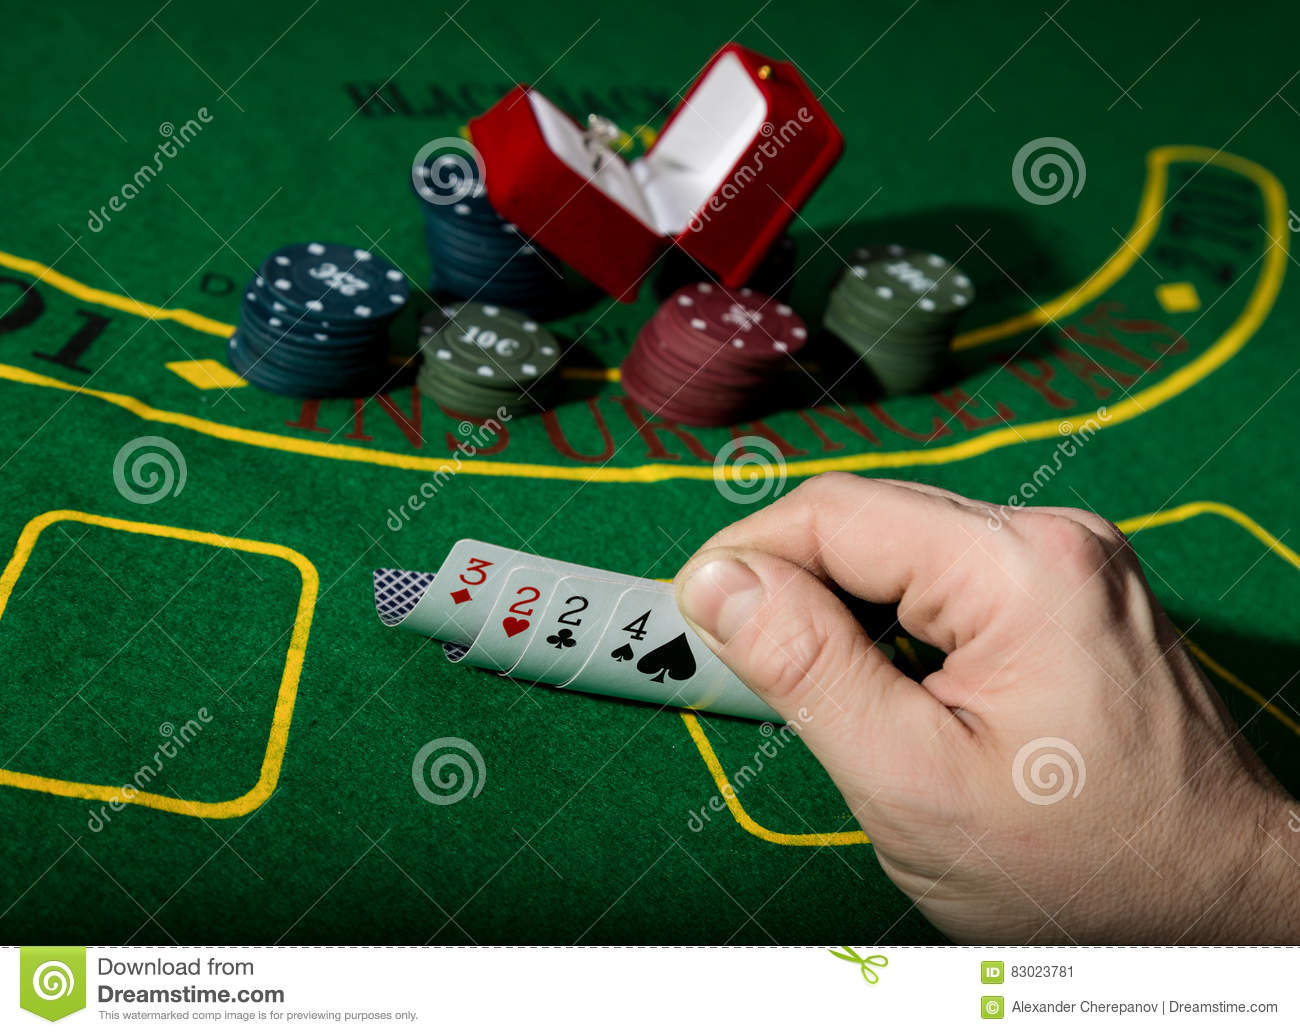 Poker table background - Casino Chips And A Precious Ring On Green Poker Table Background Man Holding Losing Combination